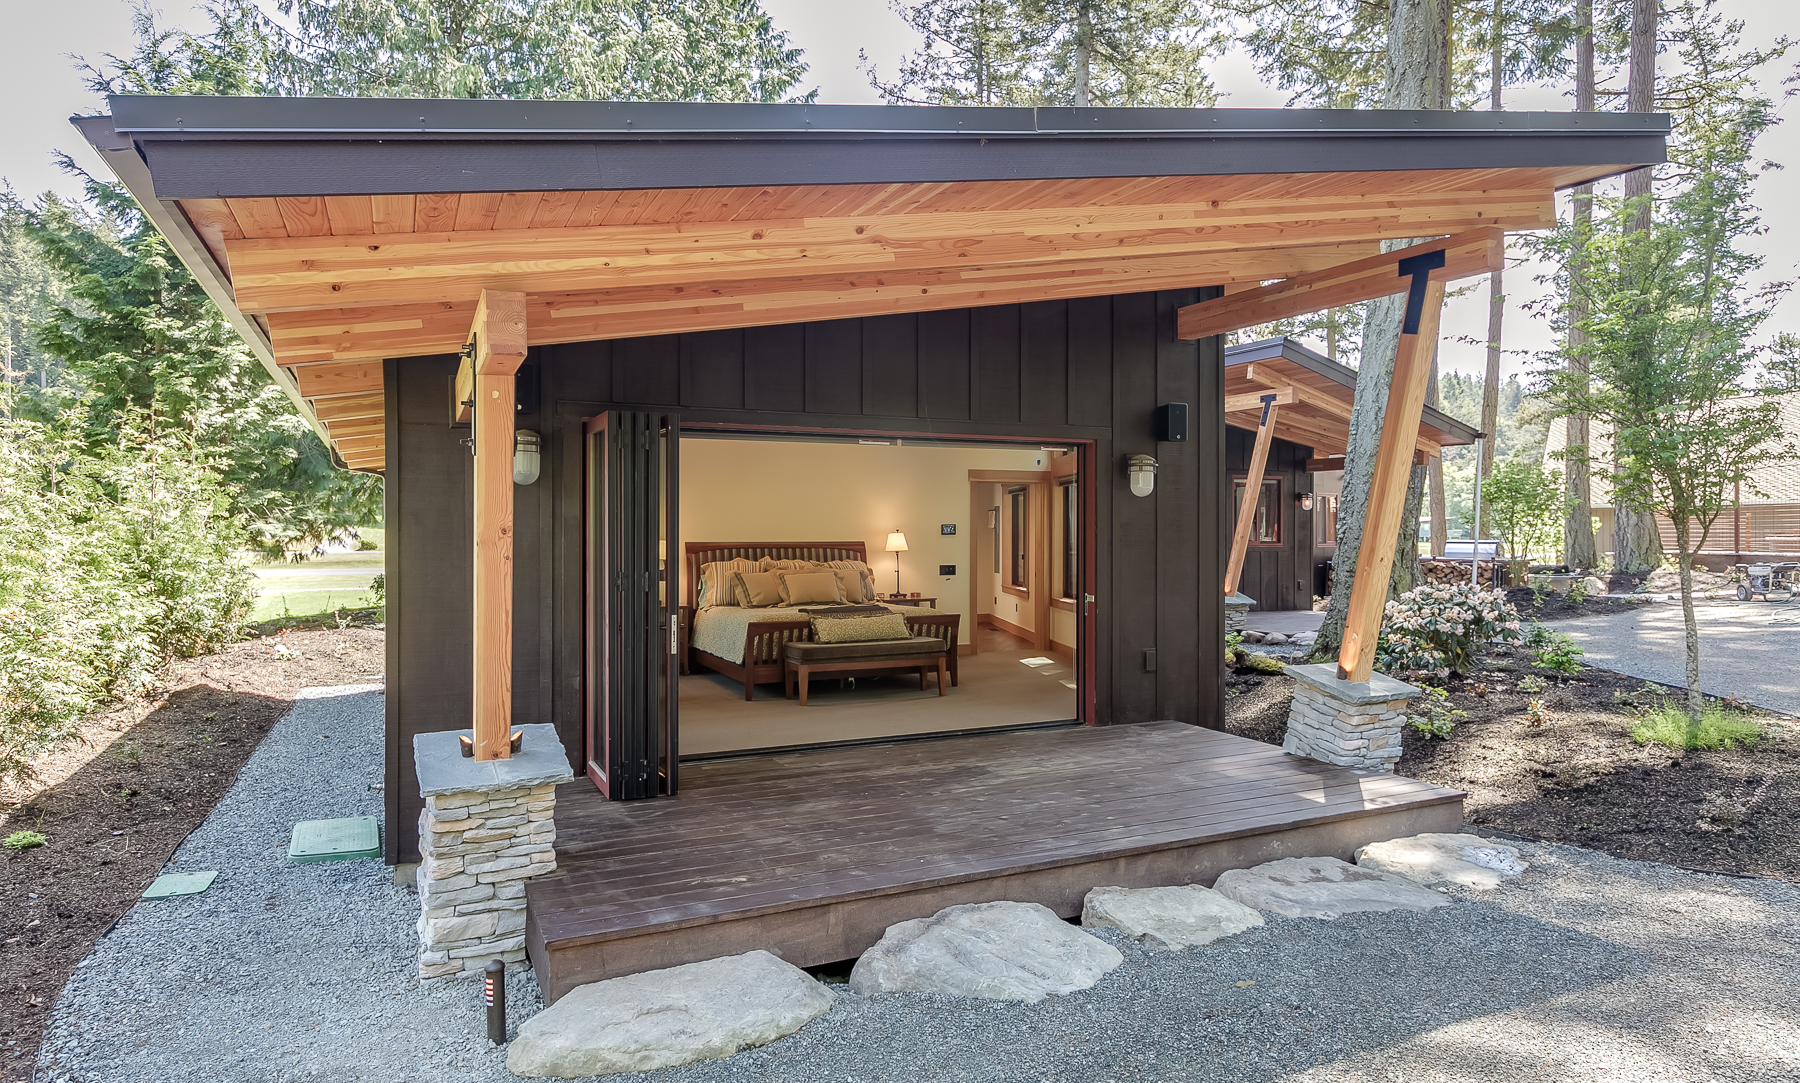 New Construction with jetting over hang on this Master Bedroom covered porch wing and folding doors open to bring the outside in.